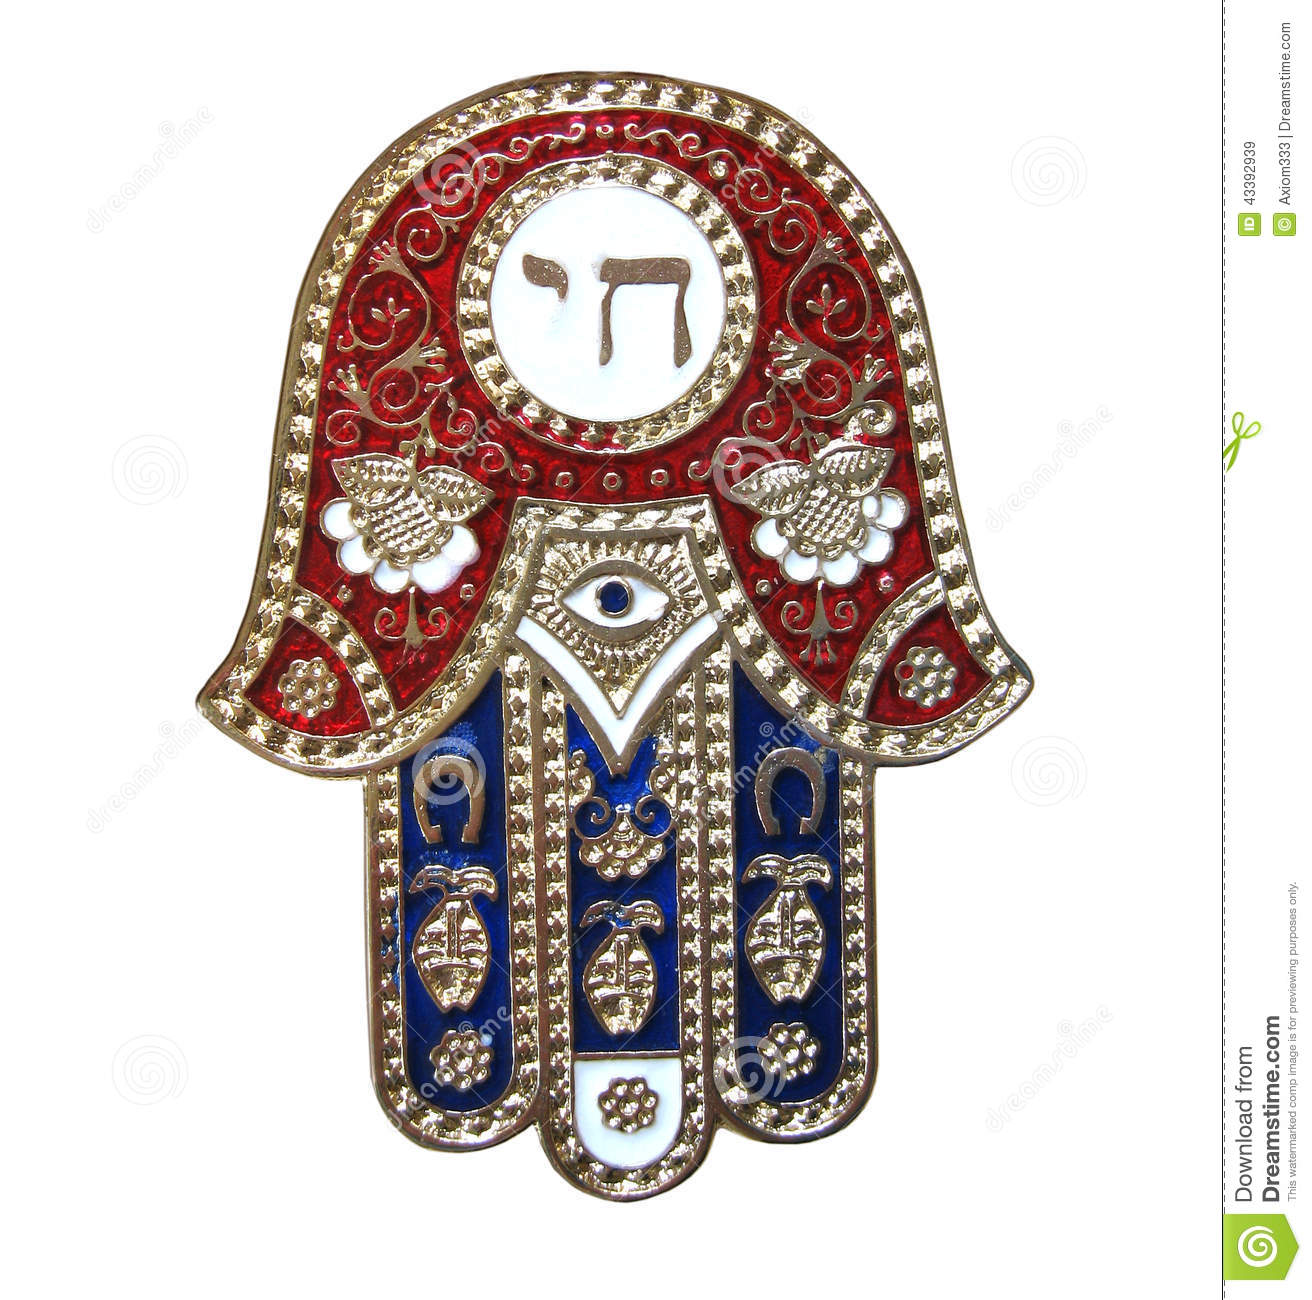 Hamsa stock photos download 279 images hamsa hand blessing and peace for the home wall decor israel hebrew royalty free stock biocorpaavc